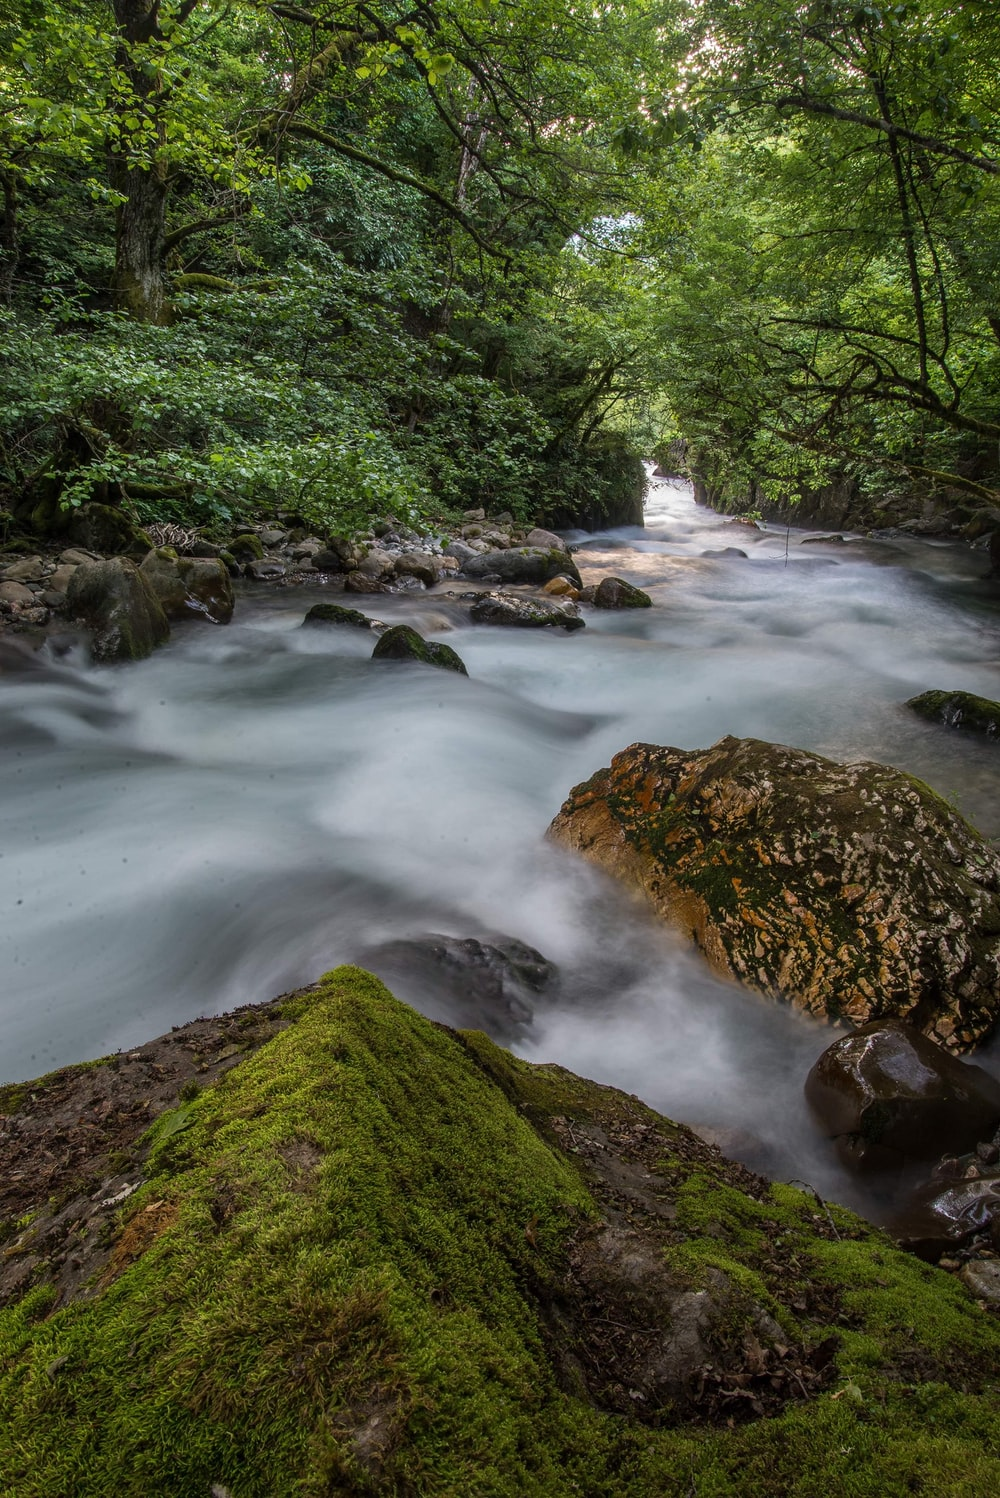 time-lapse photography of river near trees